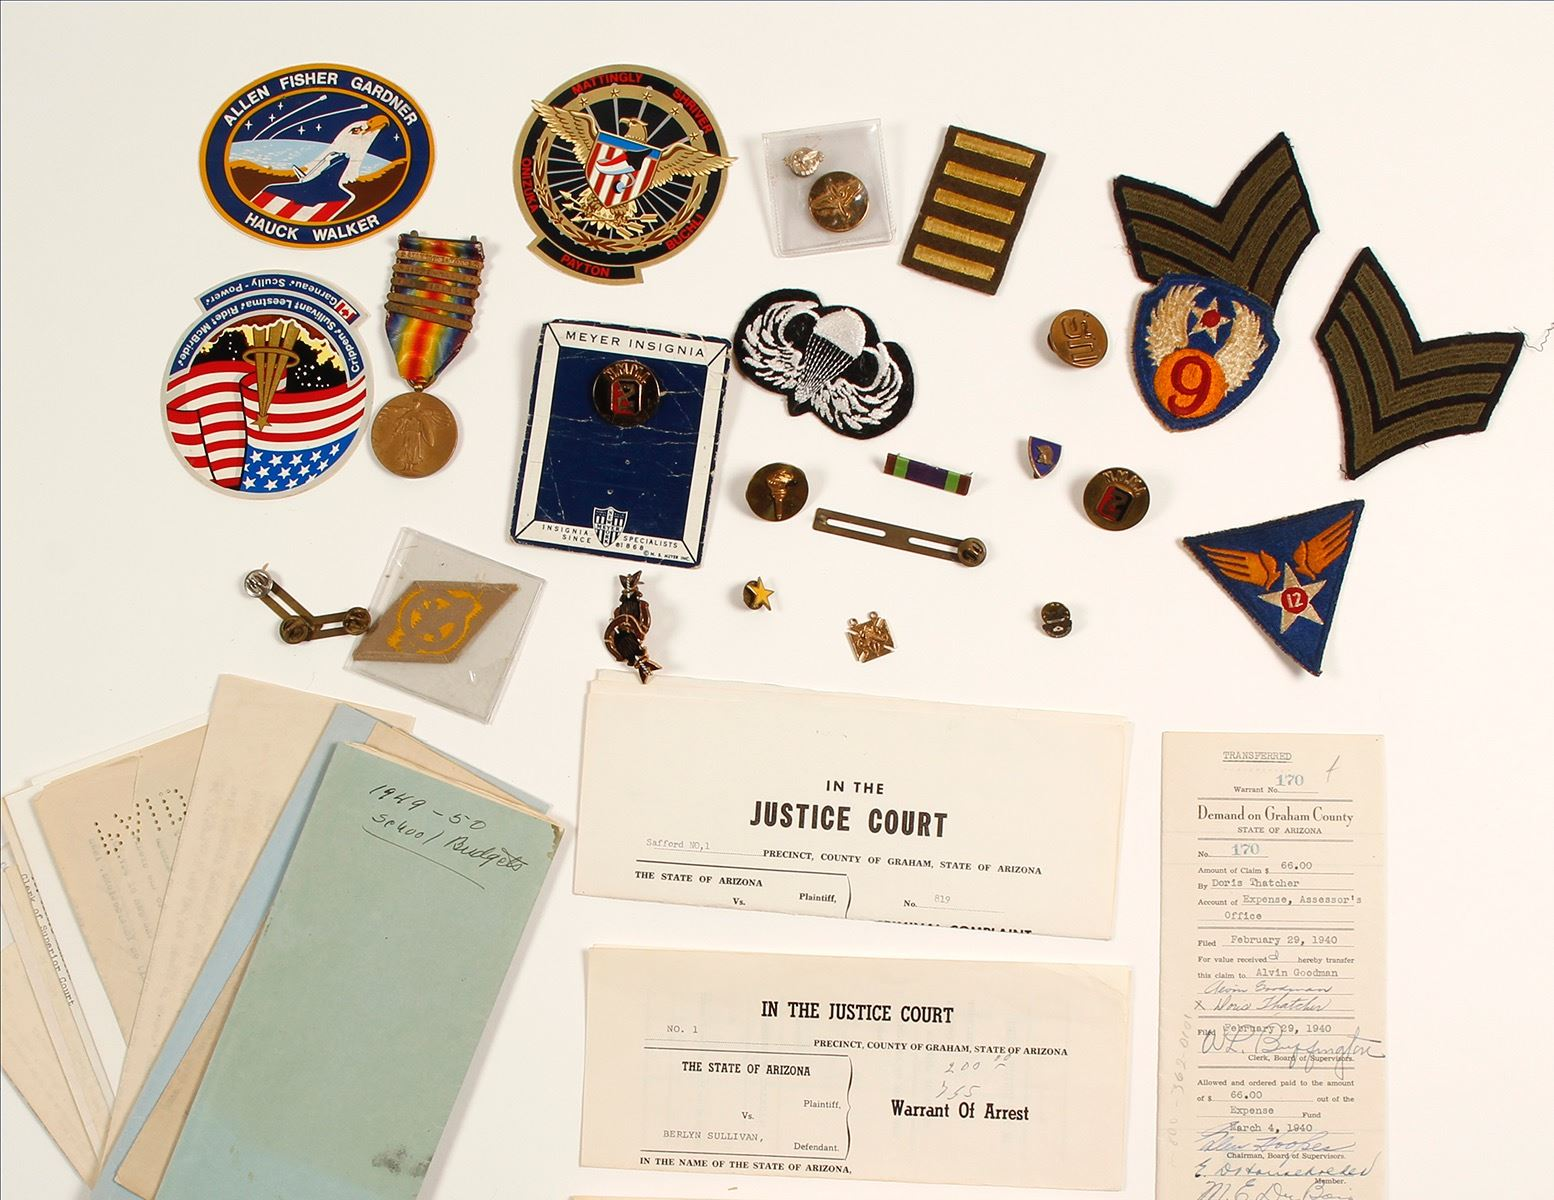 US Military Medals, Patches and Pins